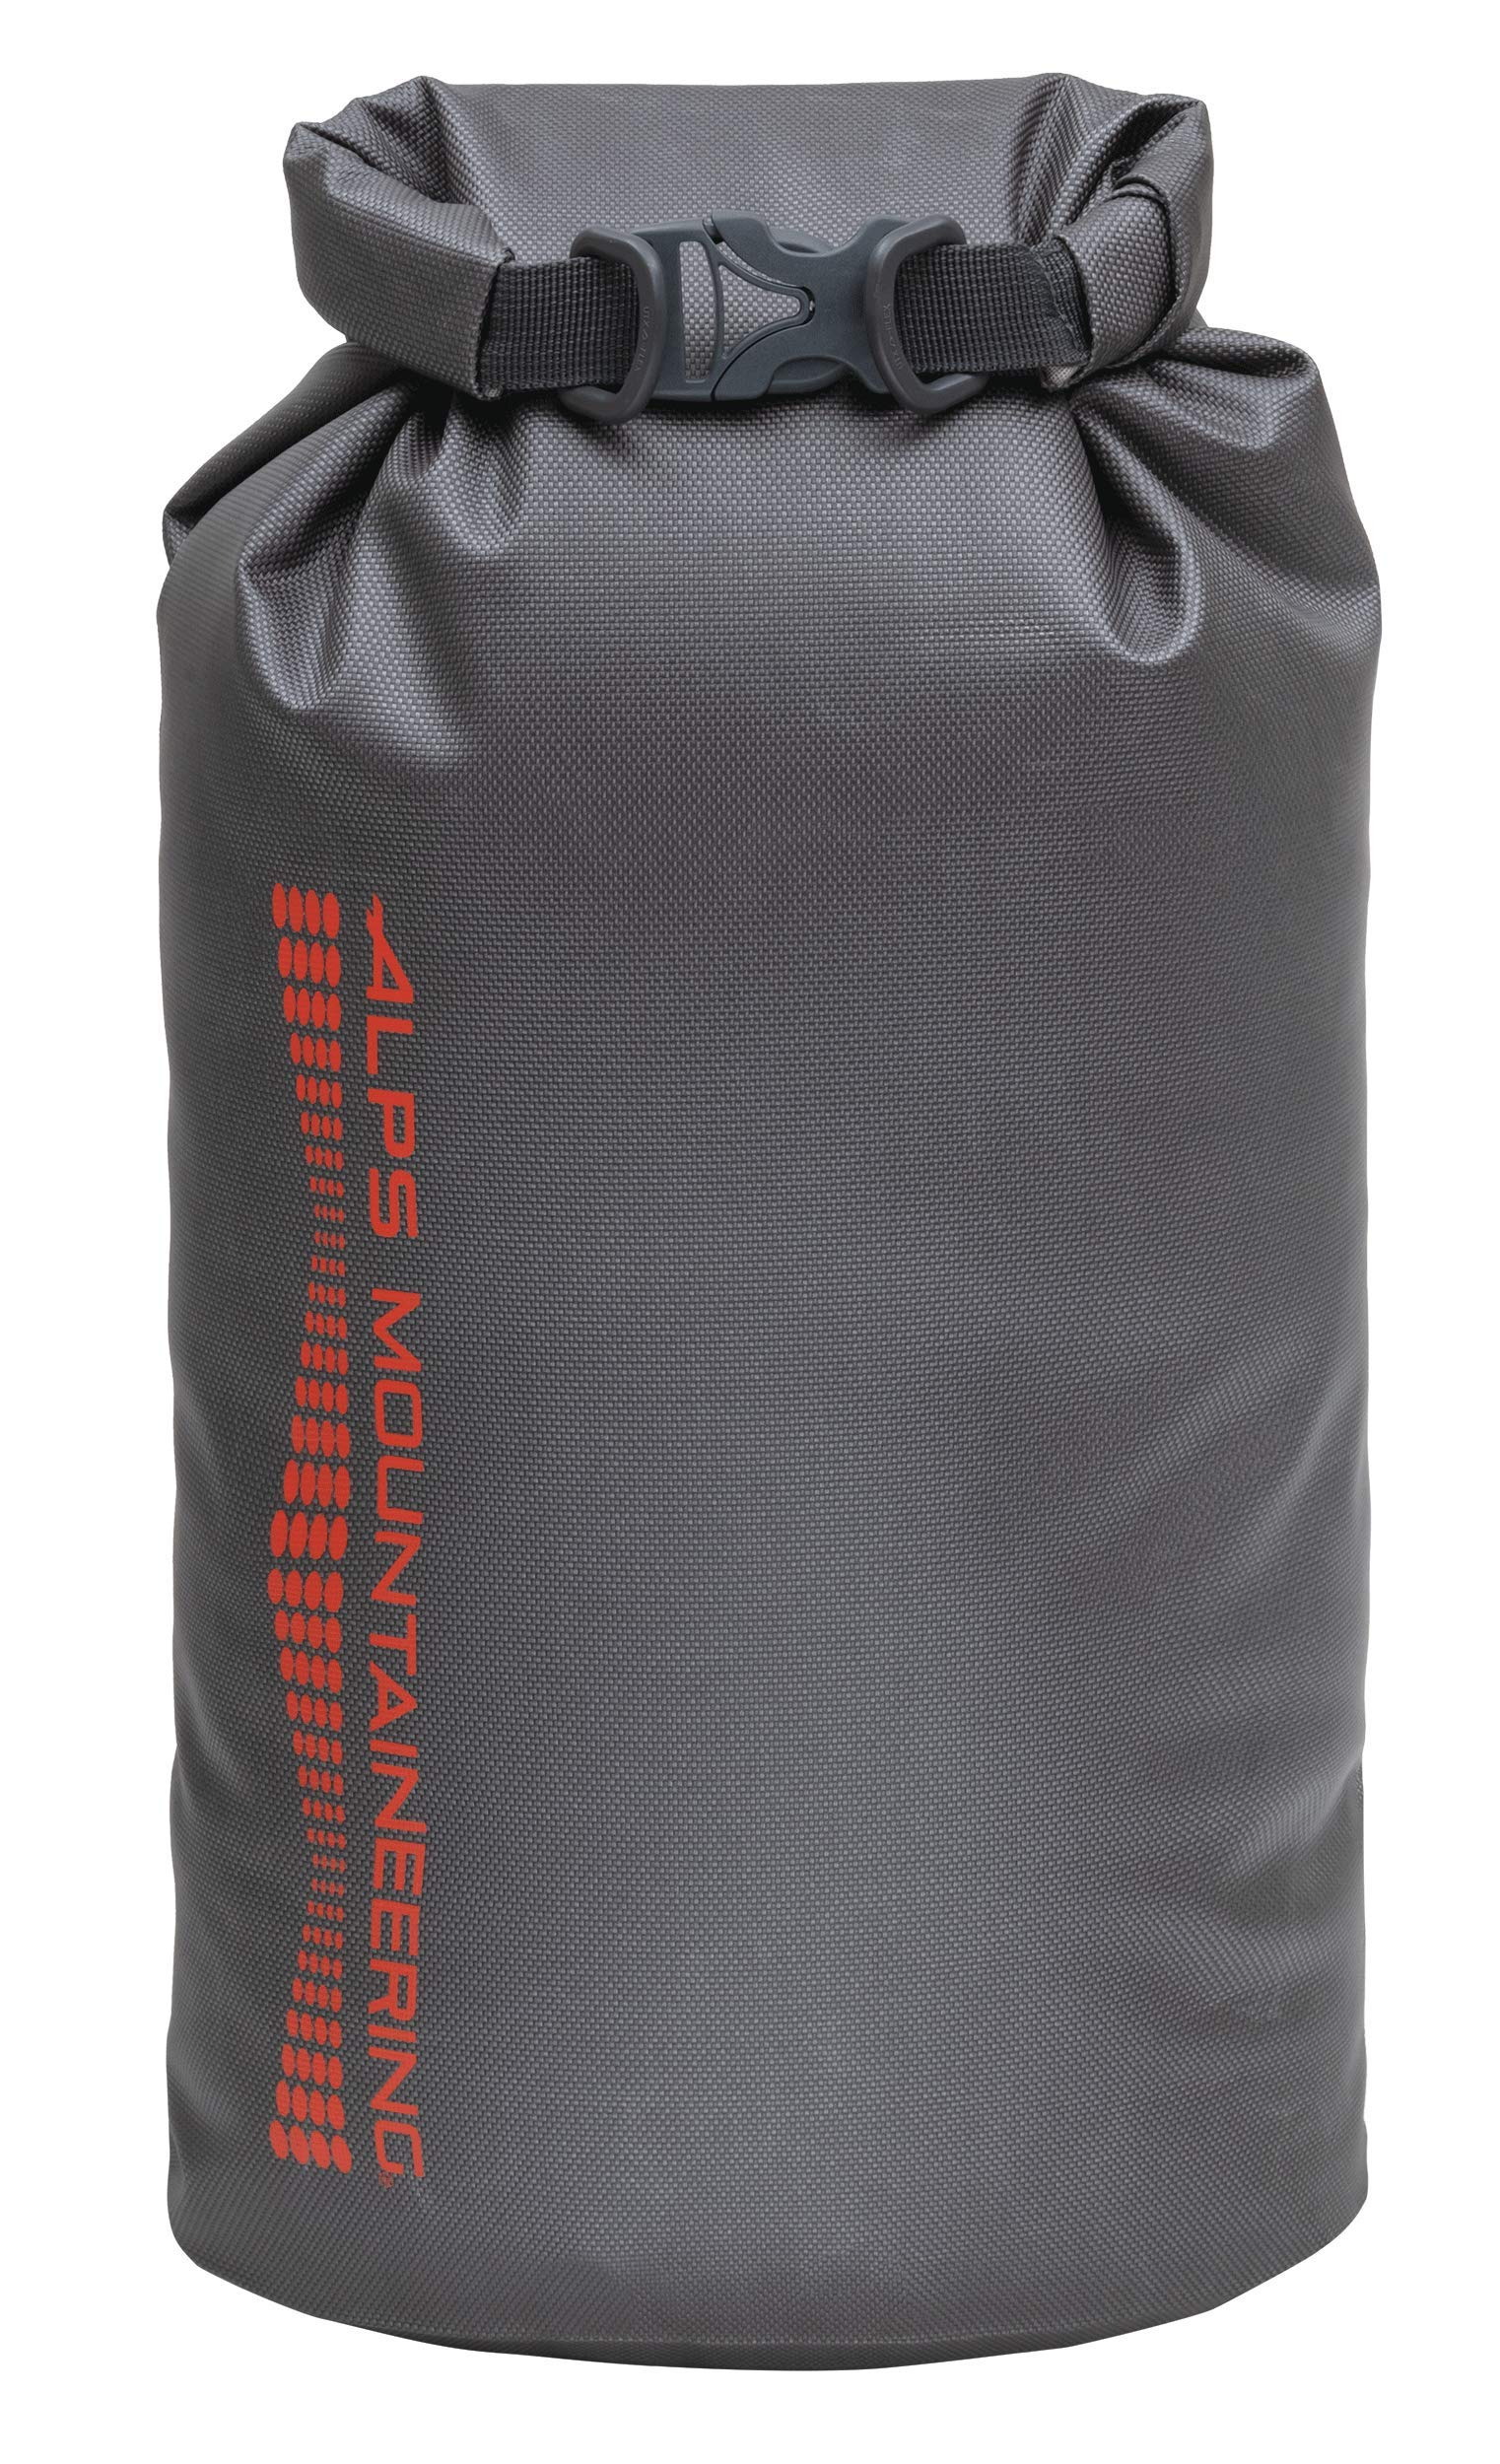 ALPS Mountaineering Torrent Waterproof Dry Bag 20L, Charcoal by ALPS Mountaineering